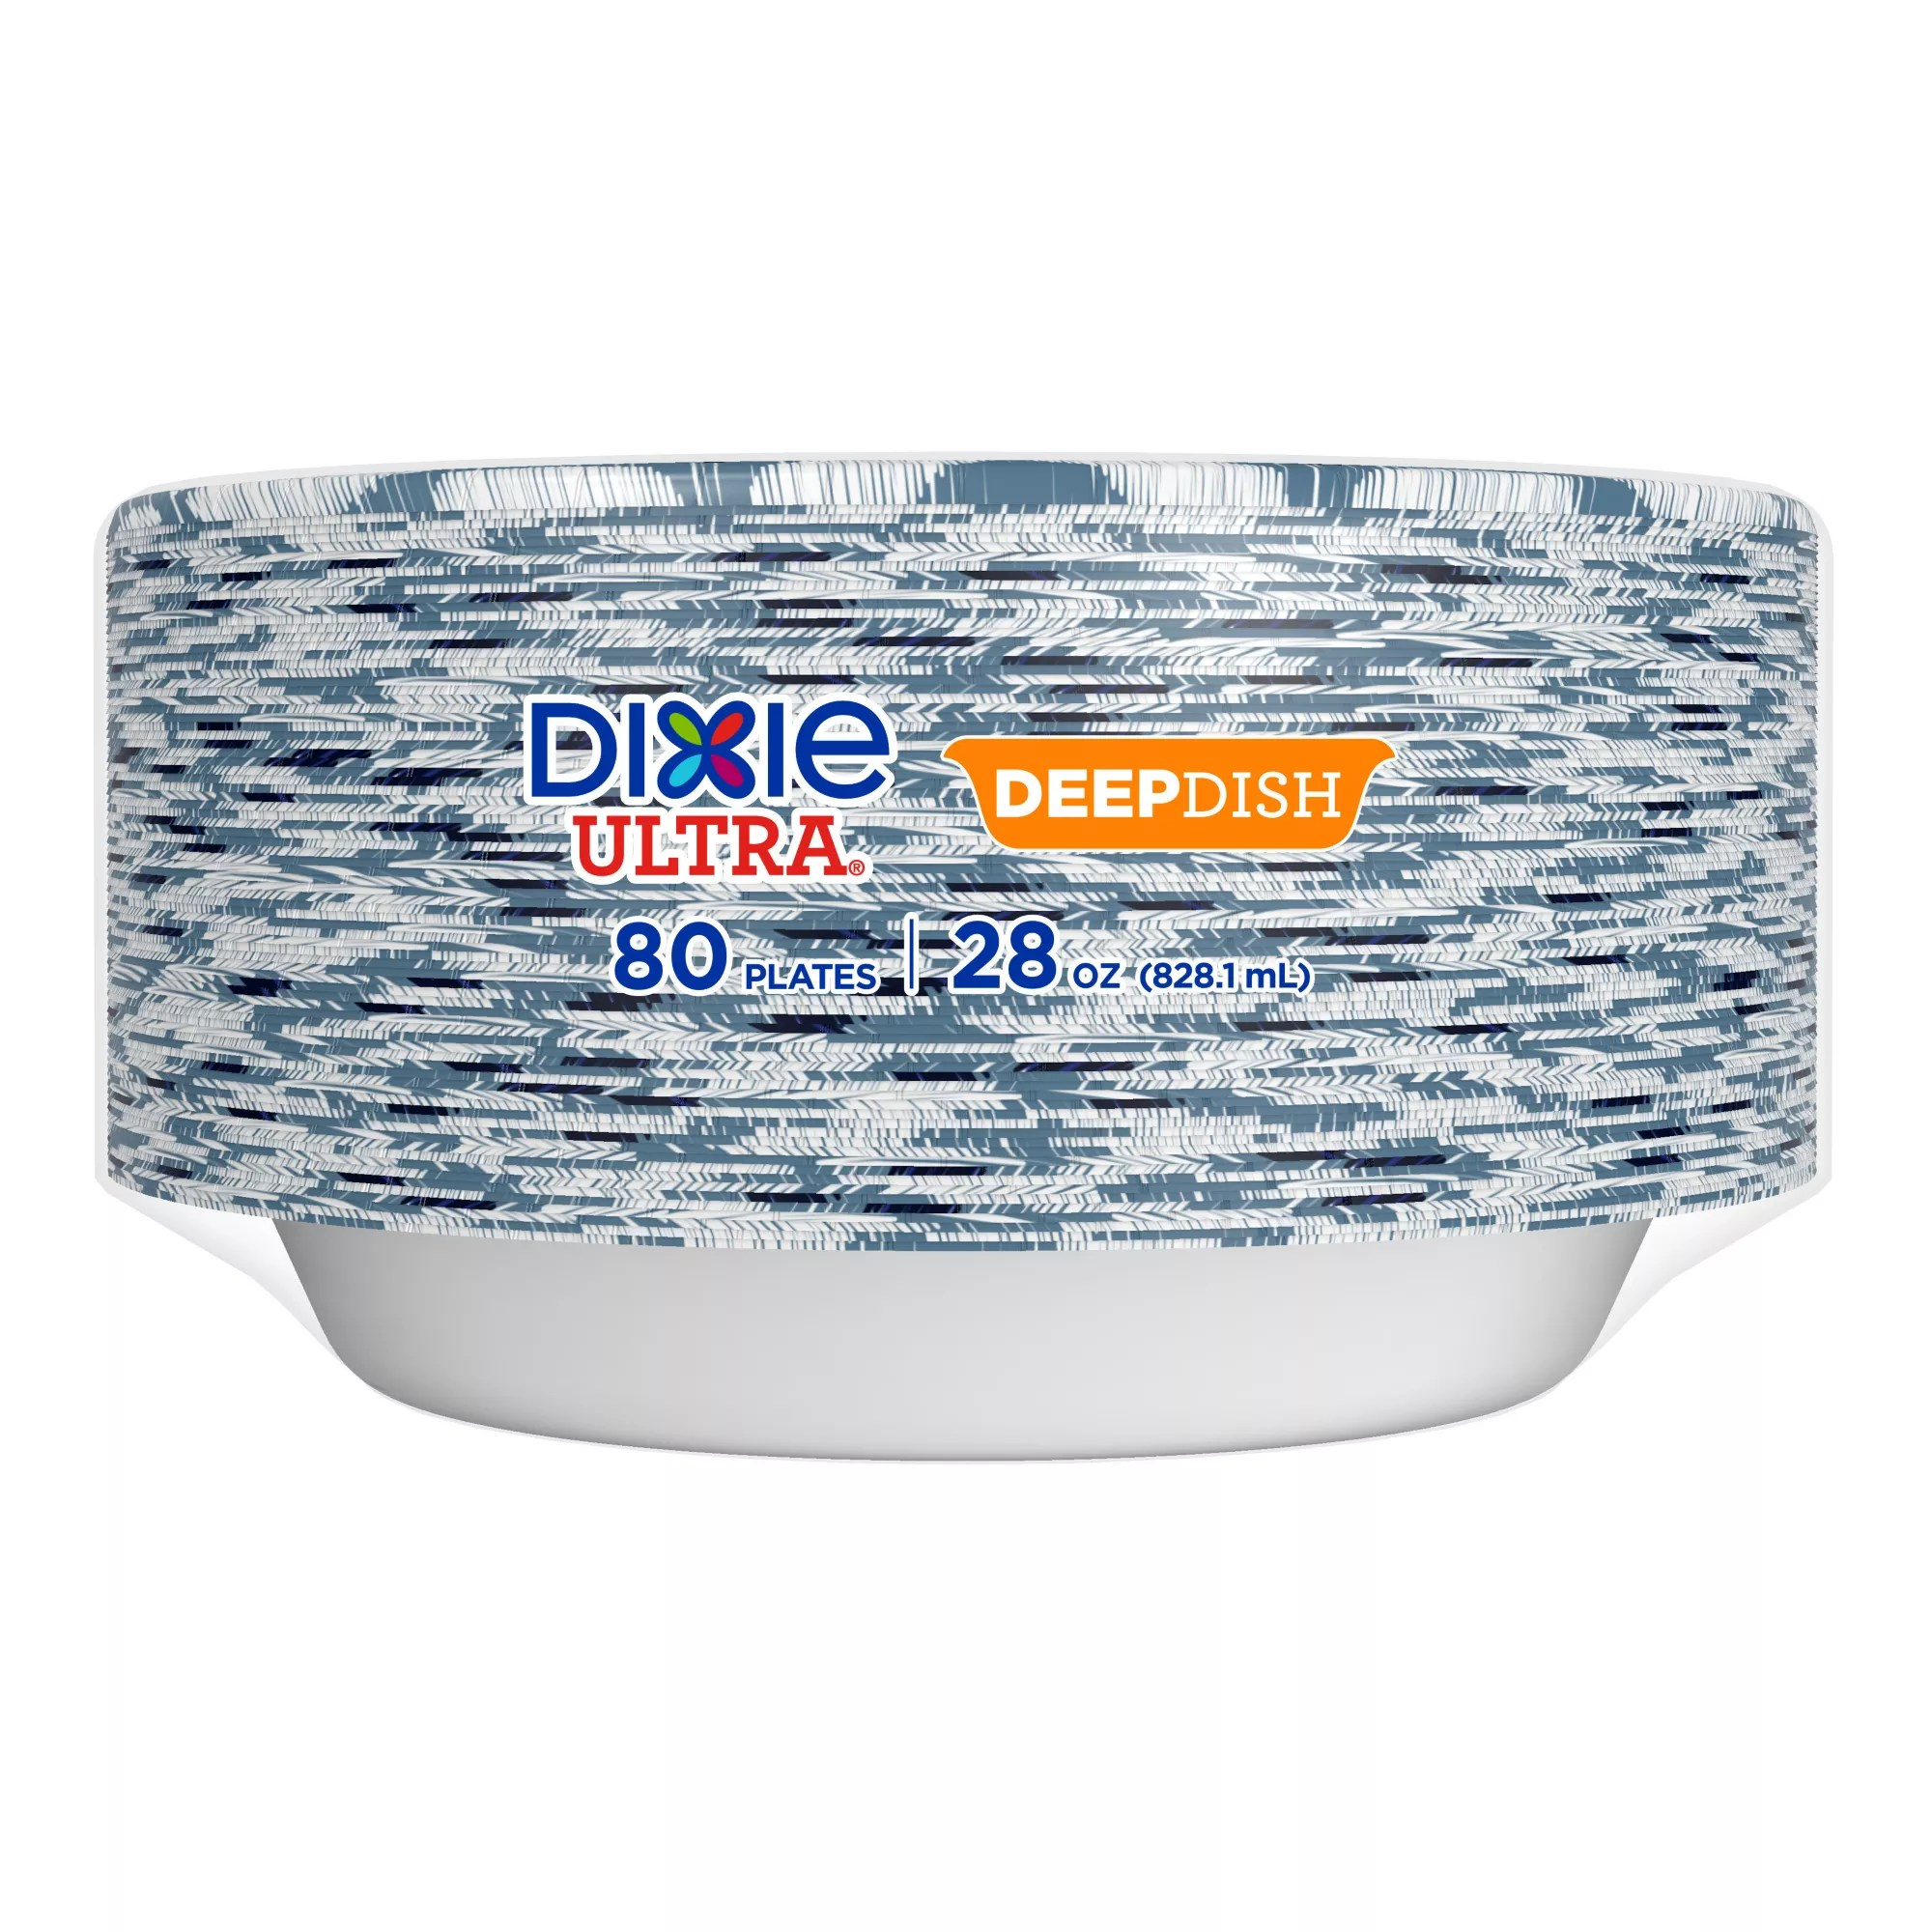 dixie ultra deep dish paper plate 80 ct